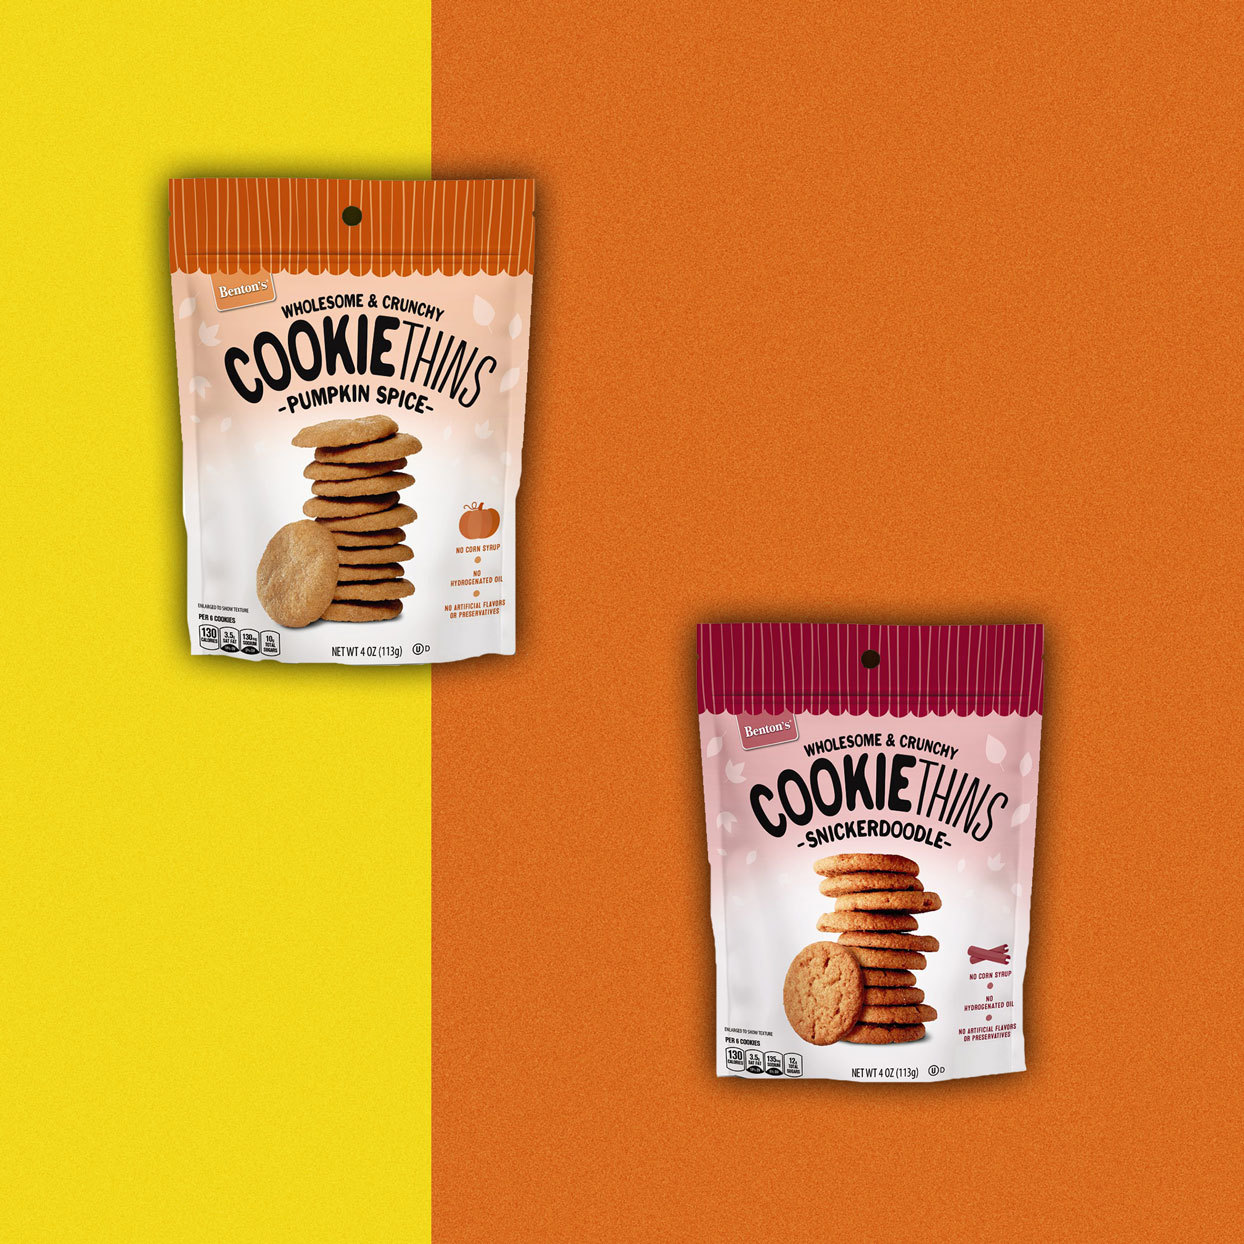 packaged Cookie Thins - Pumpkin Spice and Snickerdoodle